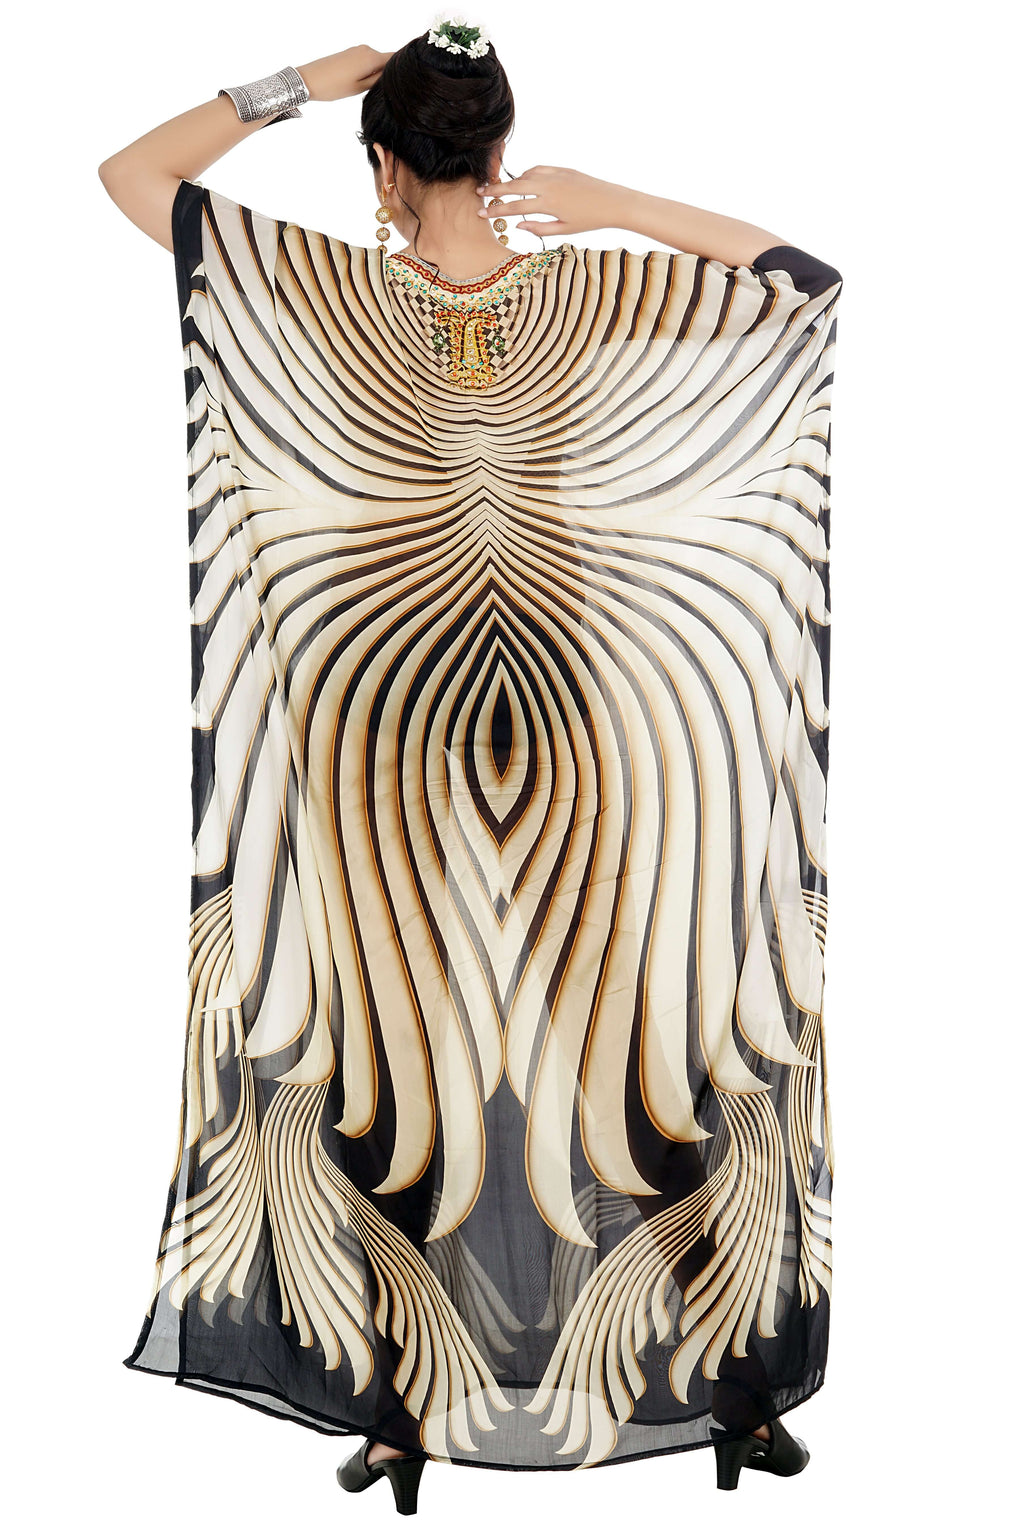 Adolescent Genre long Silk Kaftan highly inspired by Camouflage print pool party dress - Silk kaftan